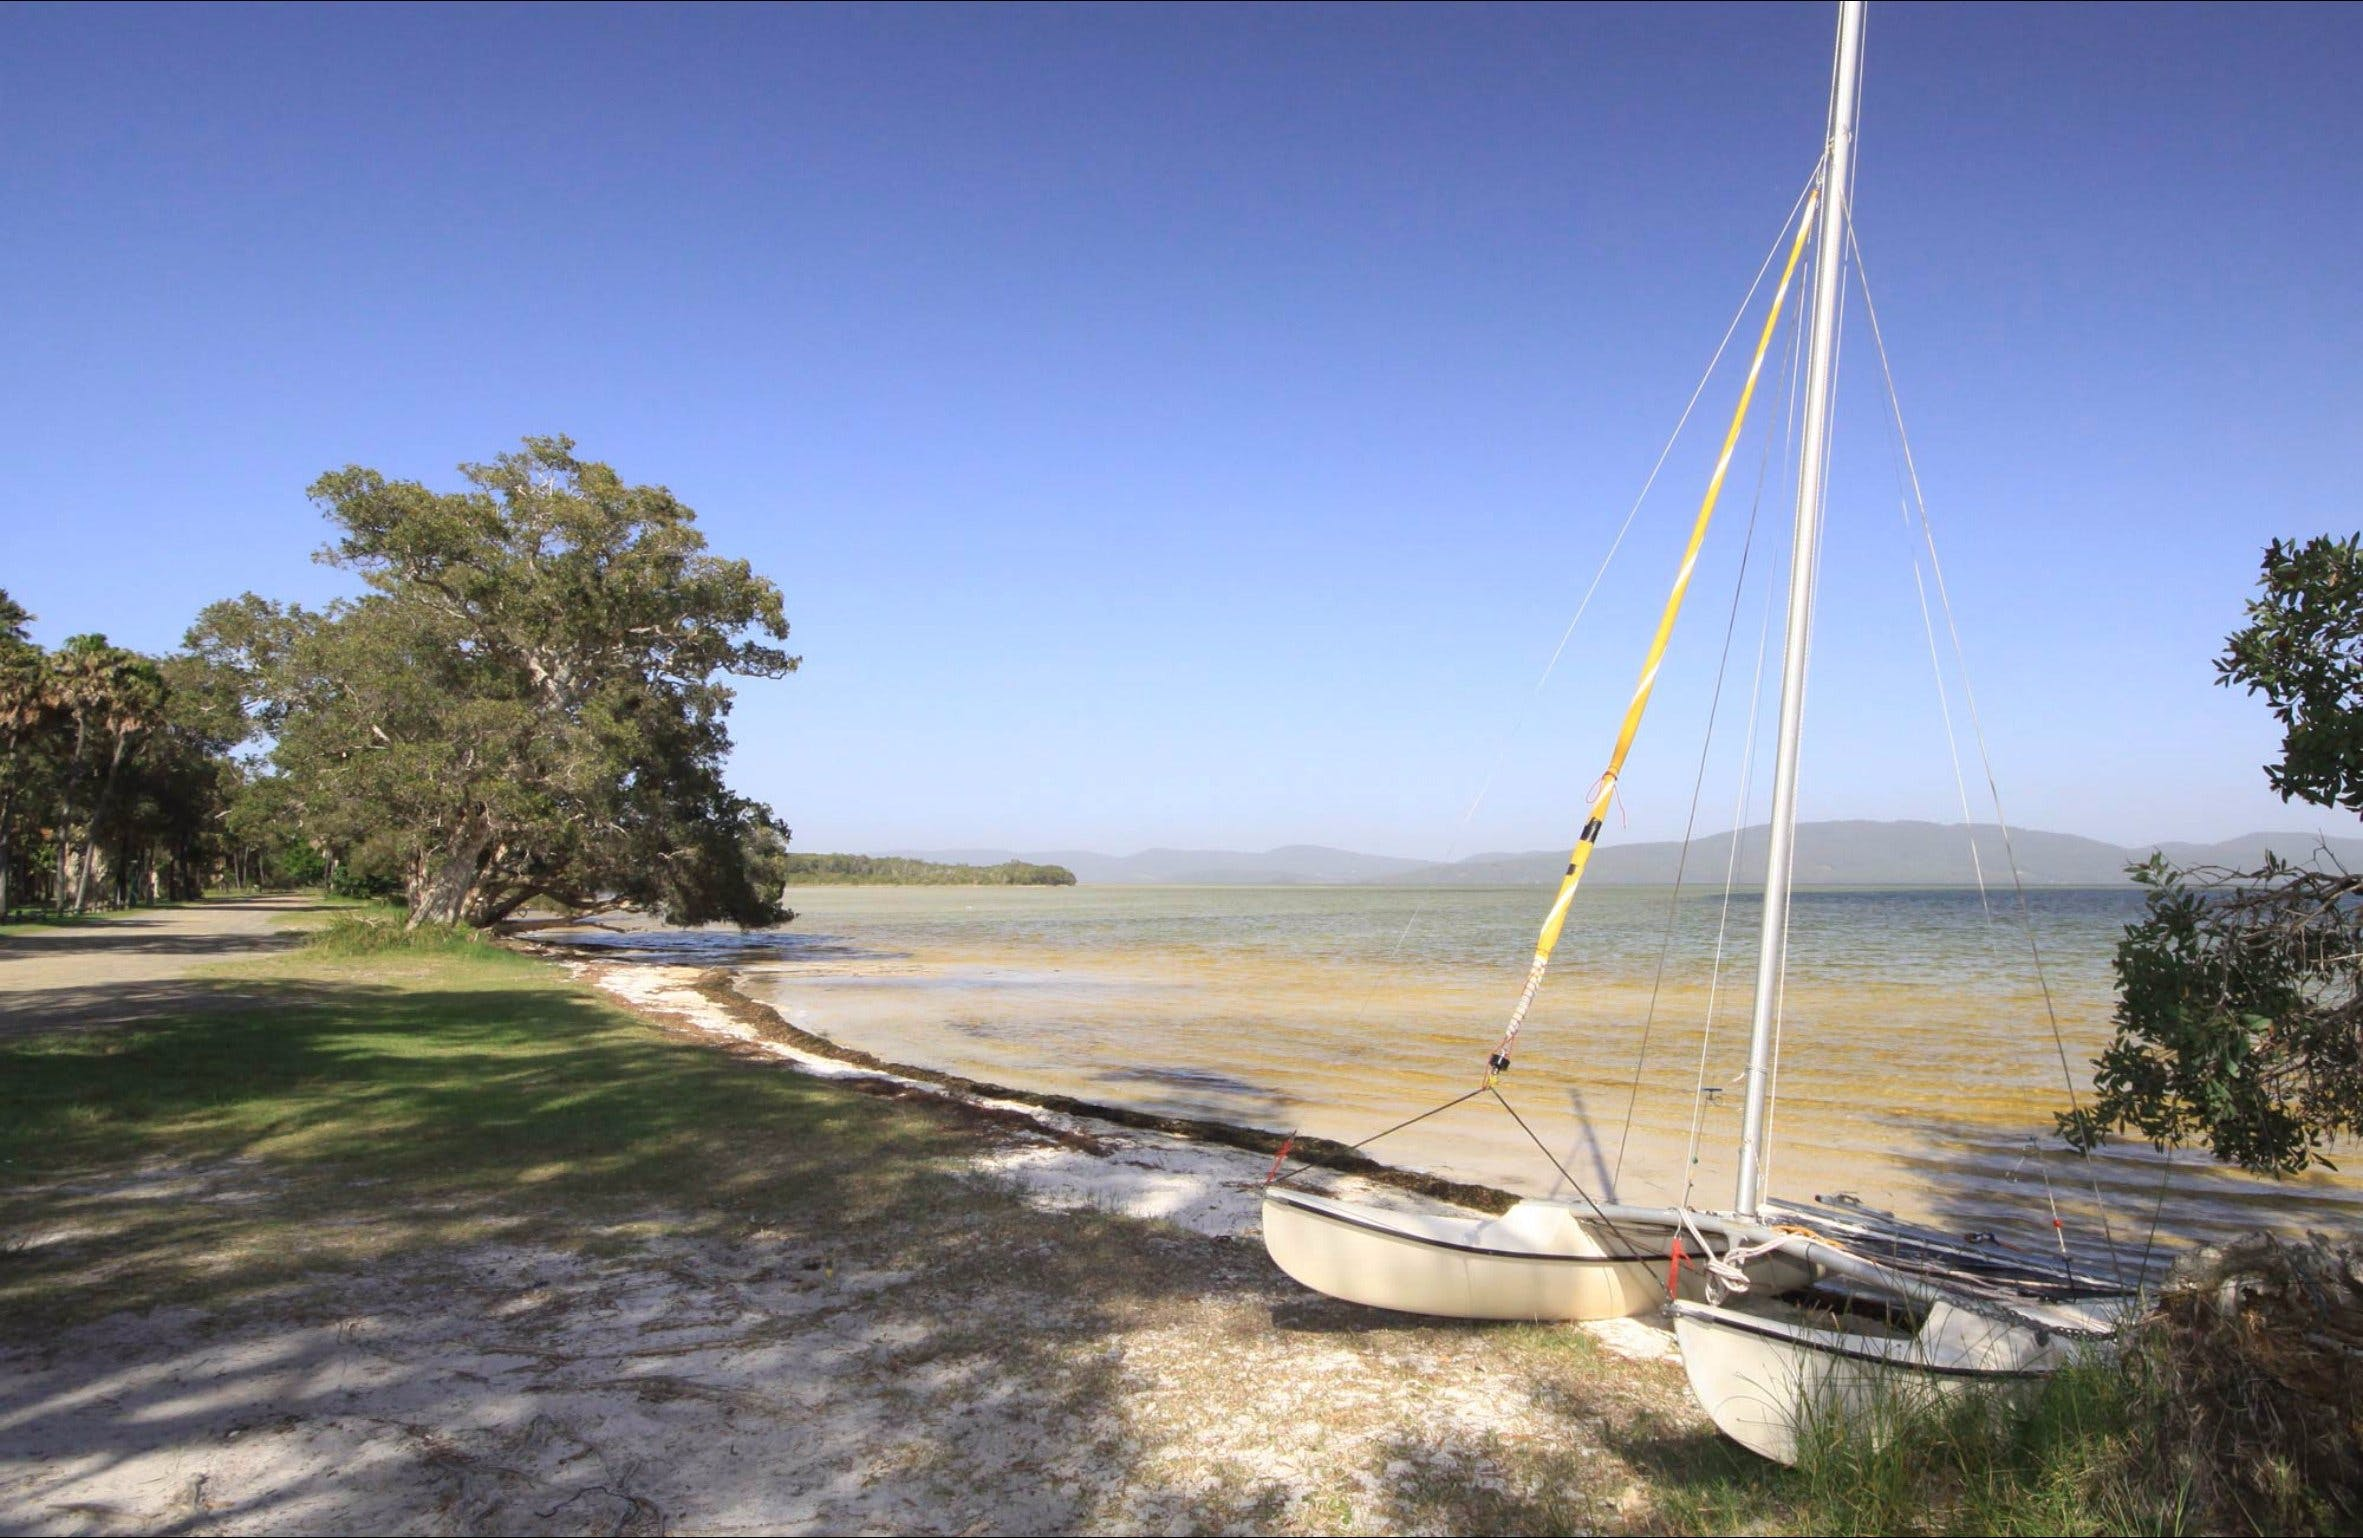 Sailing Club picnic area - Australia Accommodation